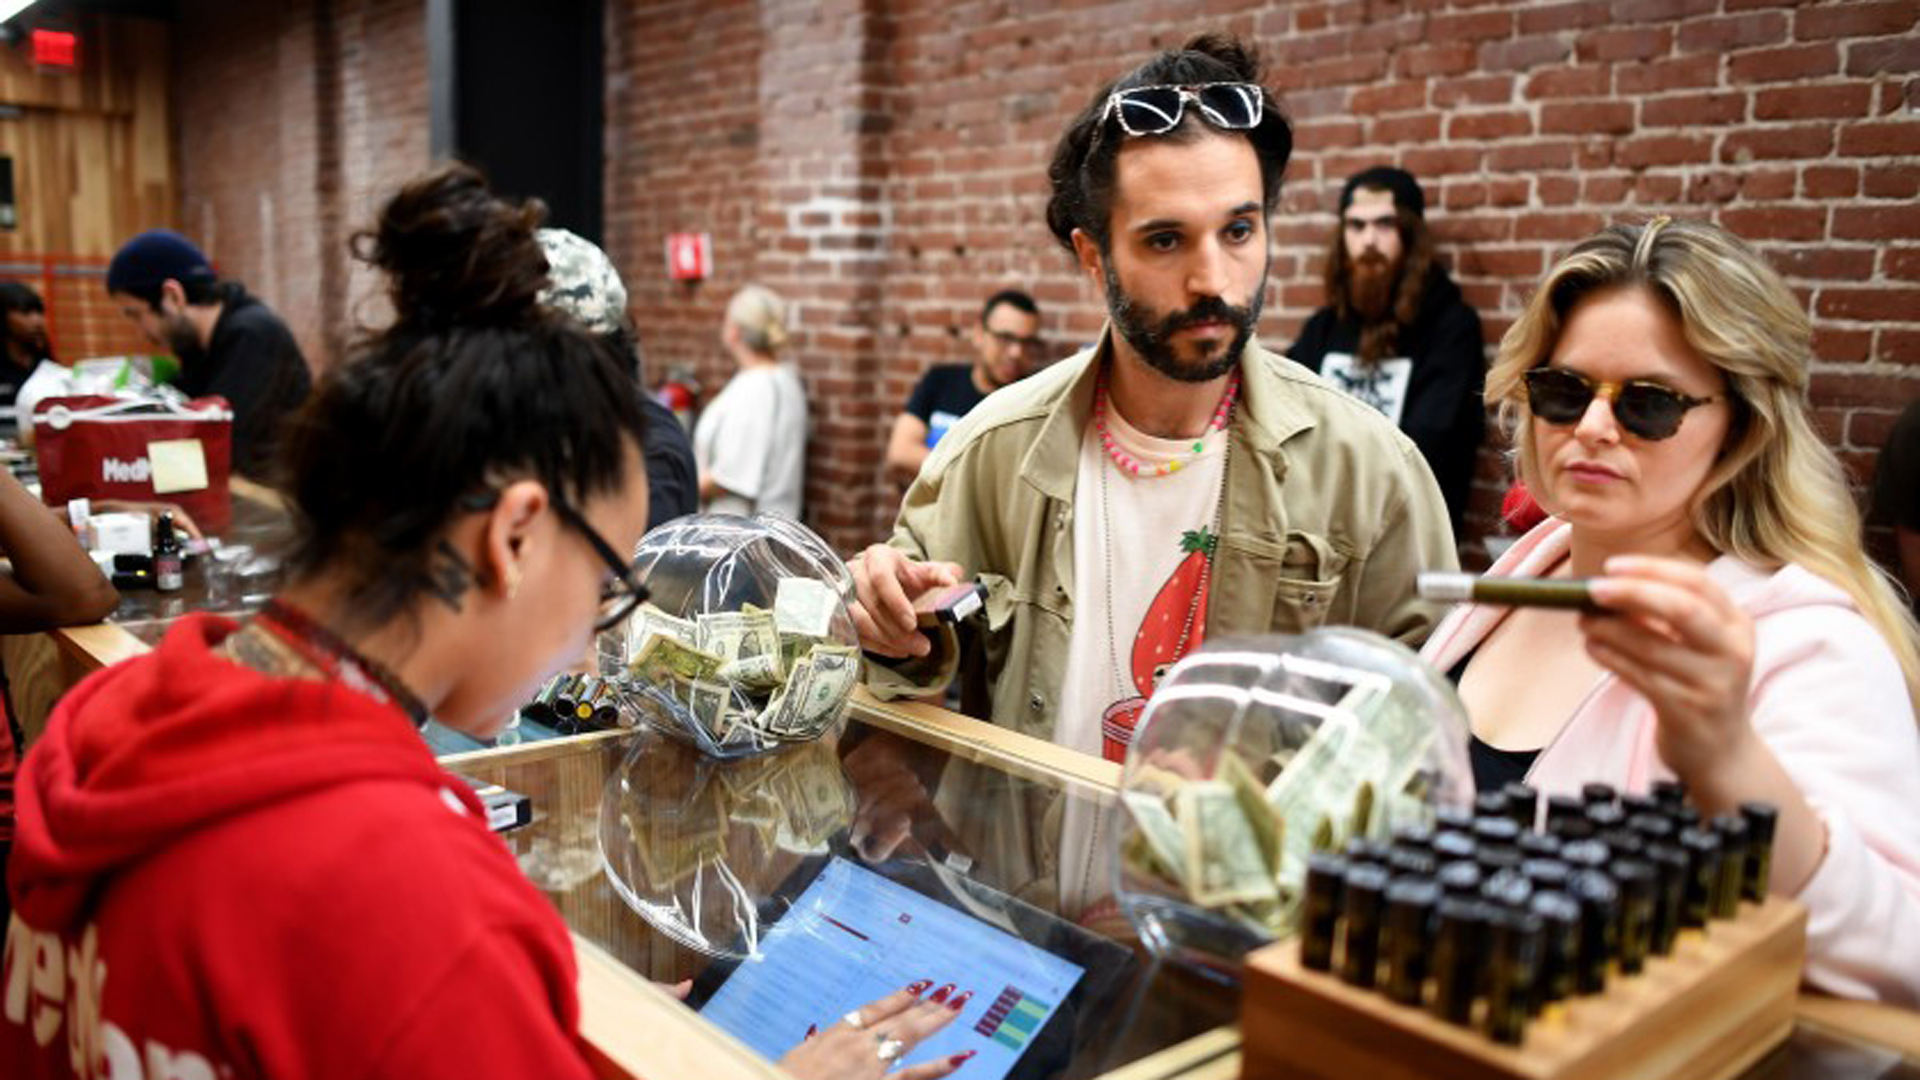 Customers peruse cannabis products at a dispensary in Los Angeles last year.(Credit: Gary Coronado / Los Angeles Times)